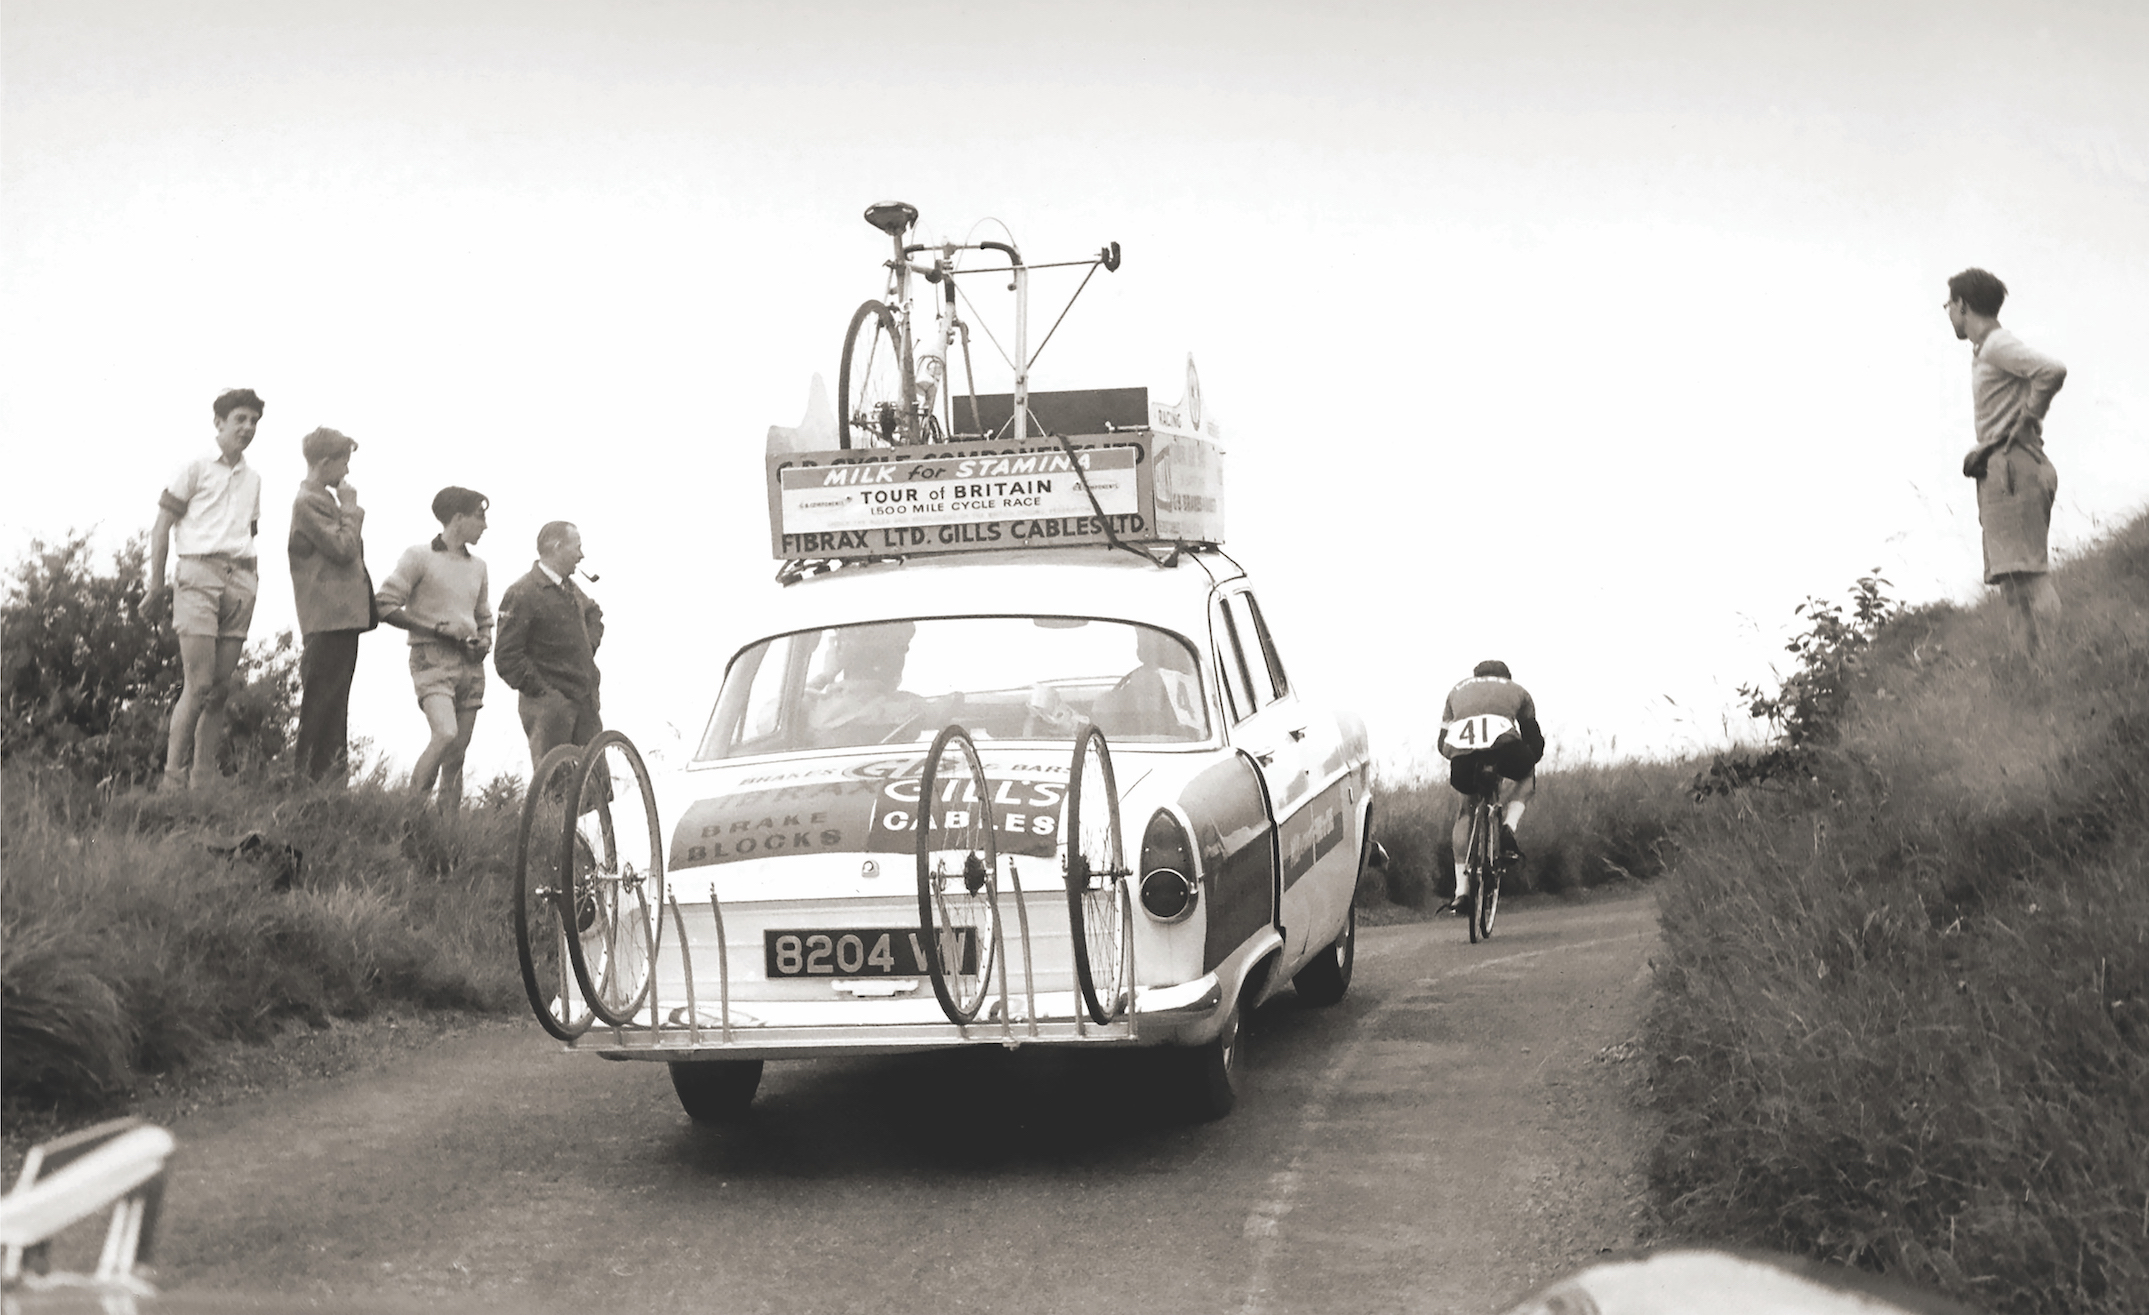 130 years of cycling - the stories behind our archive photography - Cycling Weekly